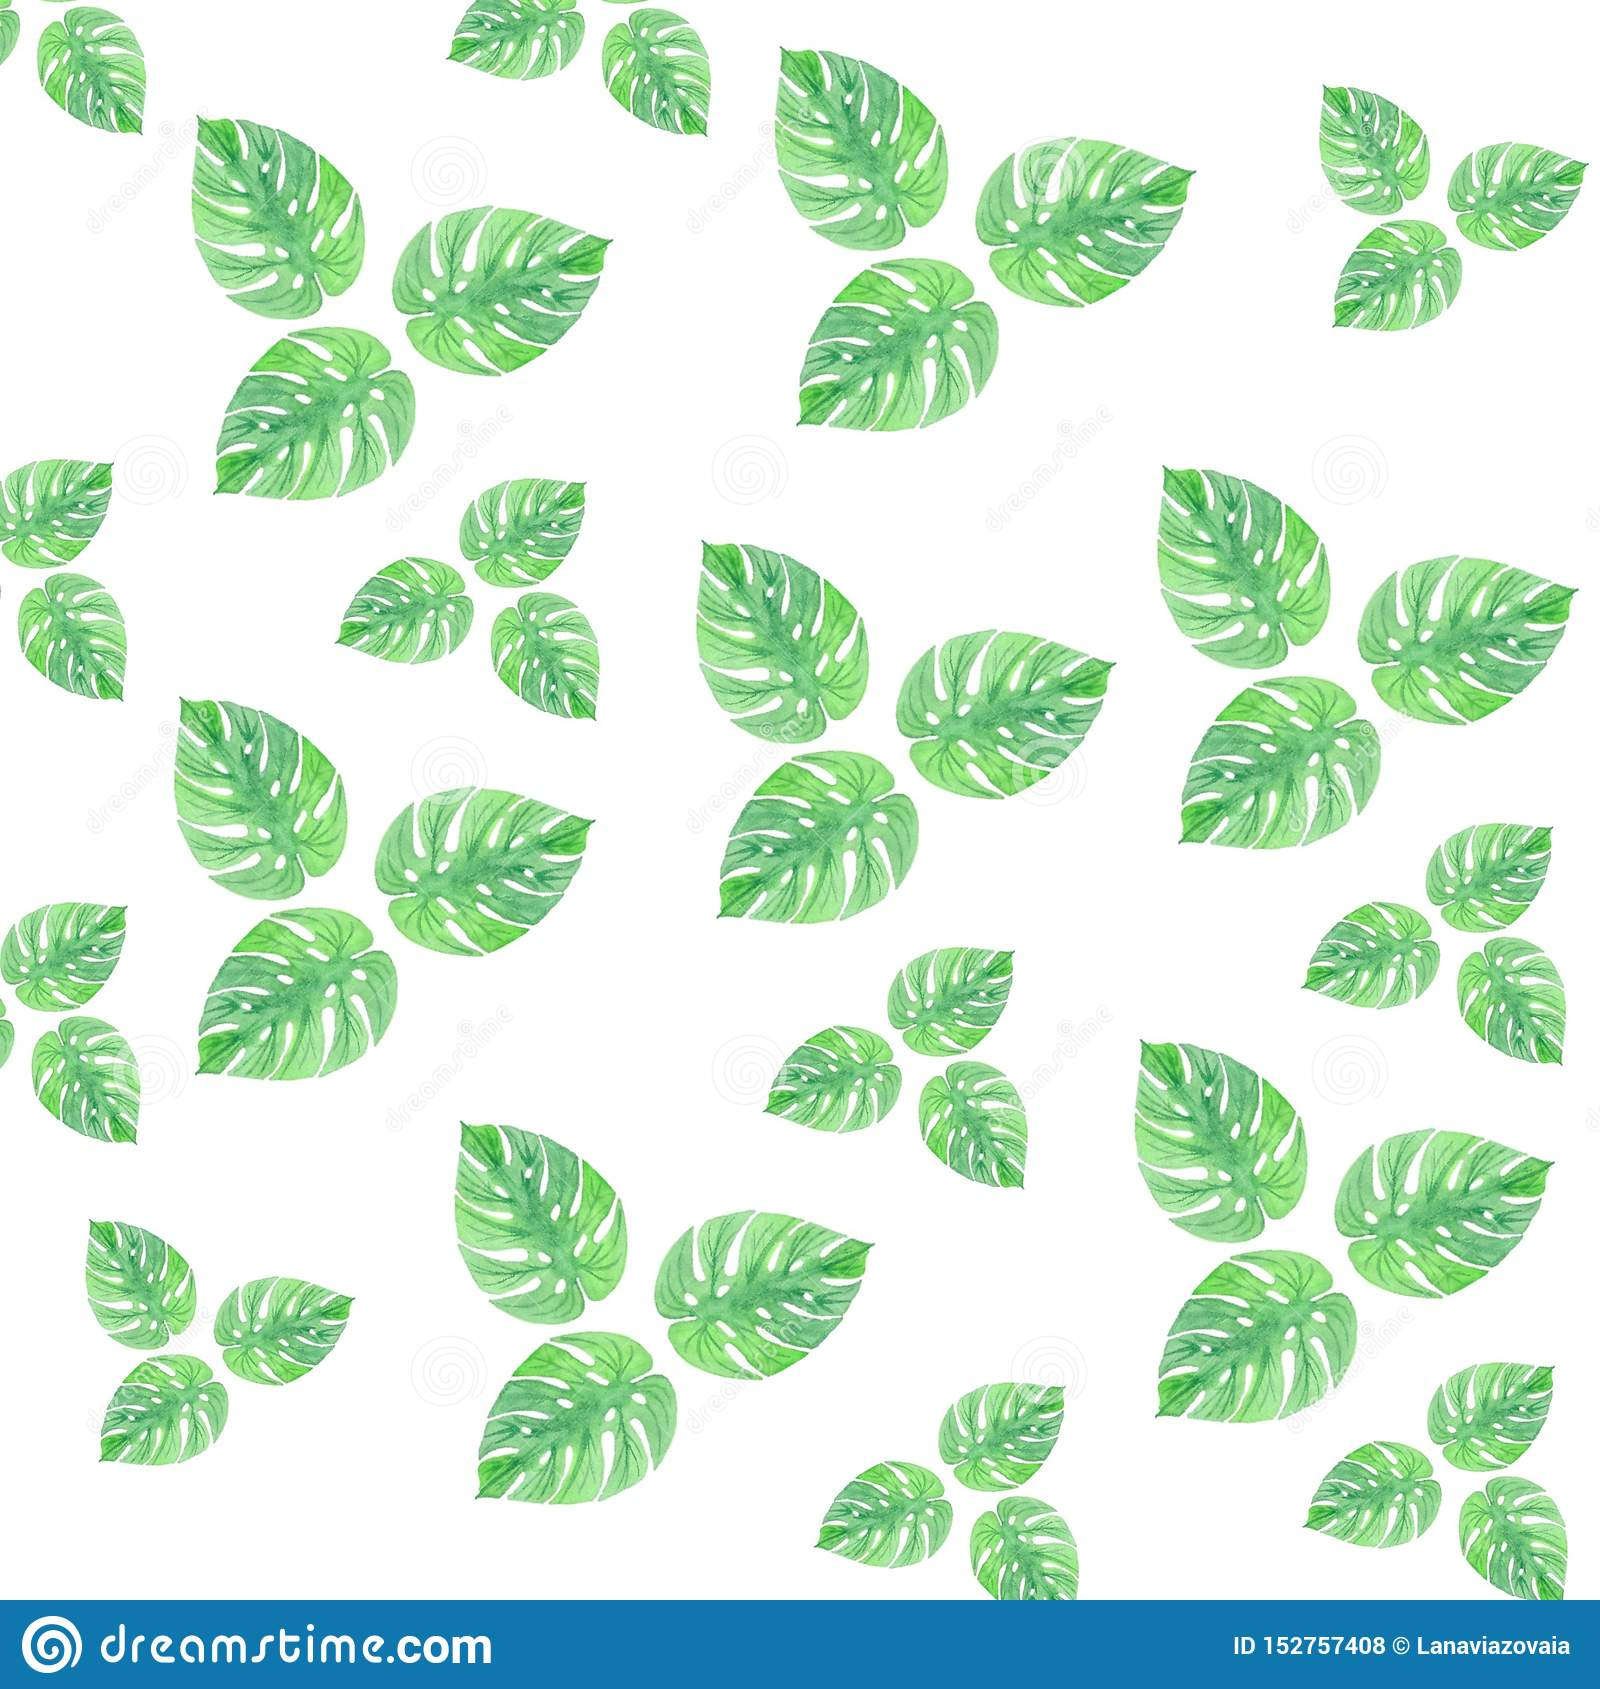 Watercolor Leaves Summer Green Pattern Isolation Gentle Drawing Wallpaper Stock Illustration Illustration Of Greenery Green 152757408